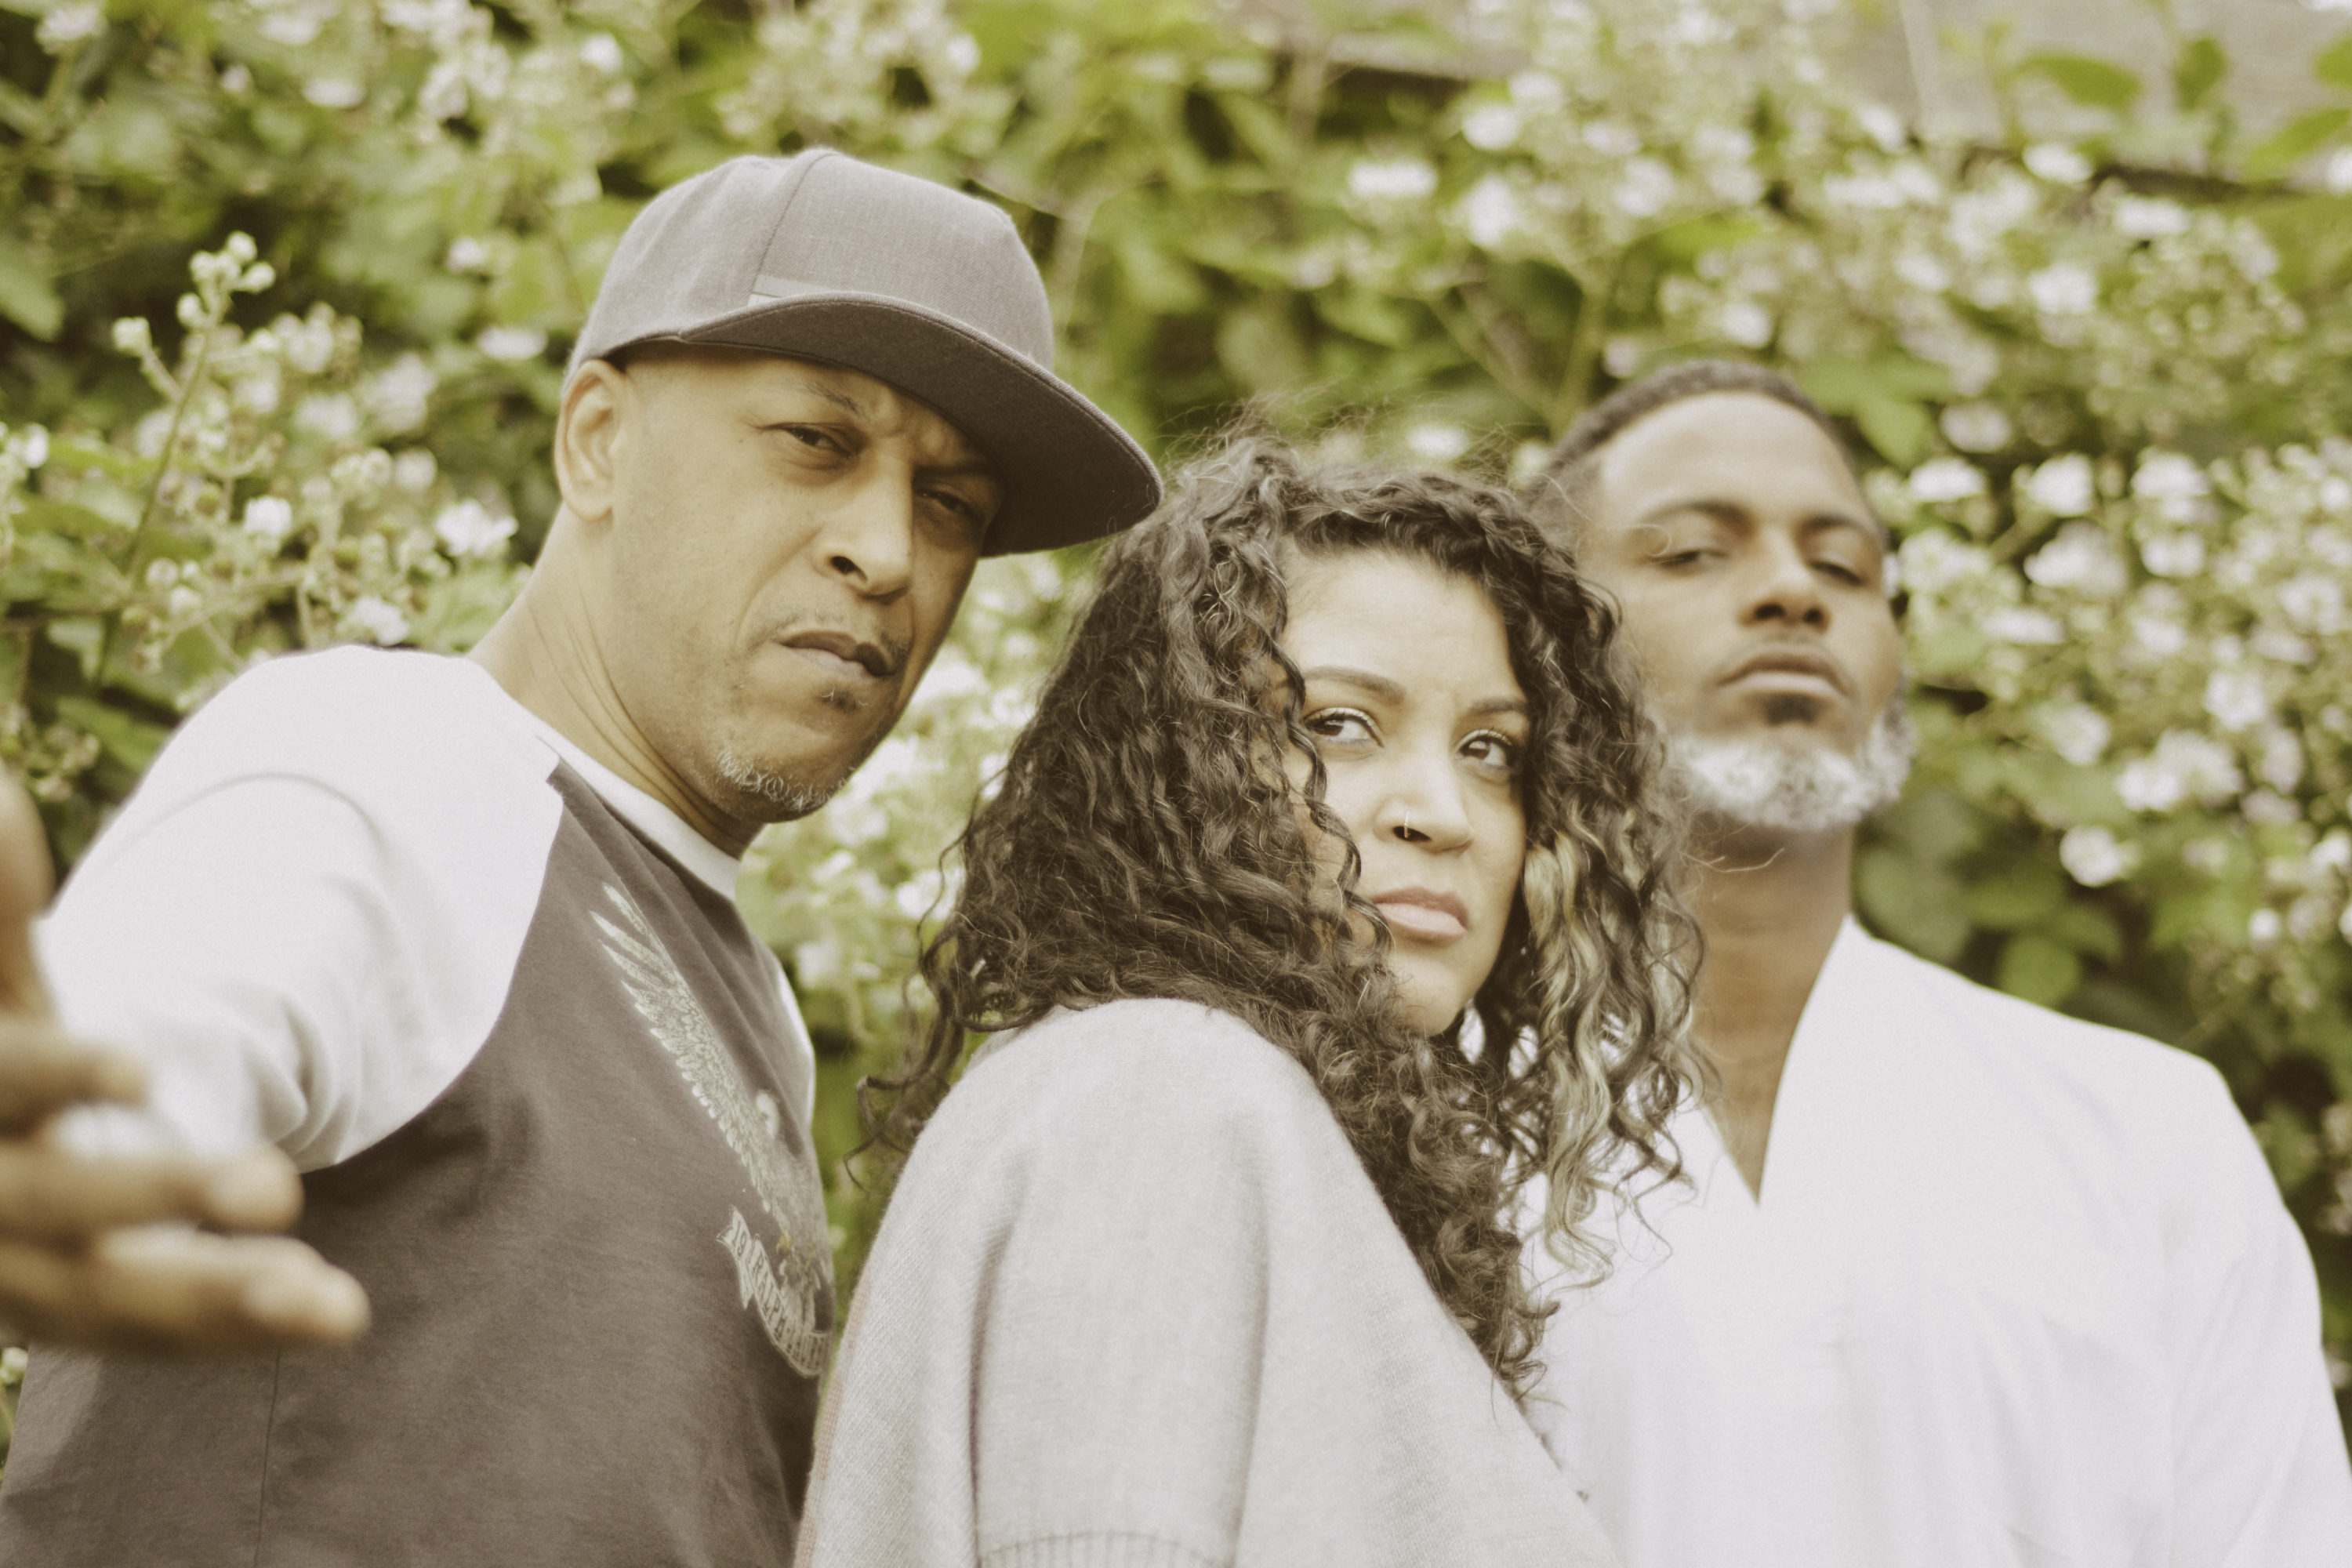 Stern Grove Festival 2020.Stern Grove Festival 2019 Digable Planets Galactic And